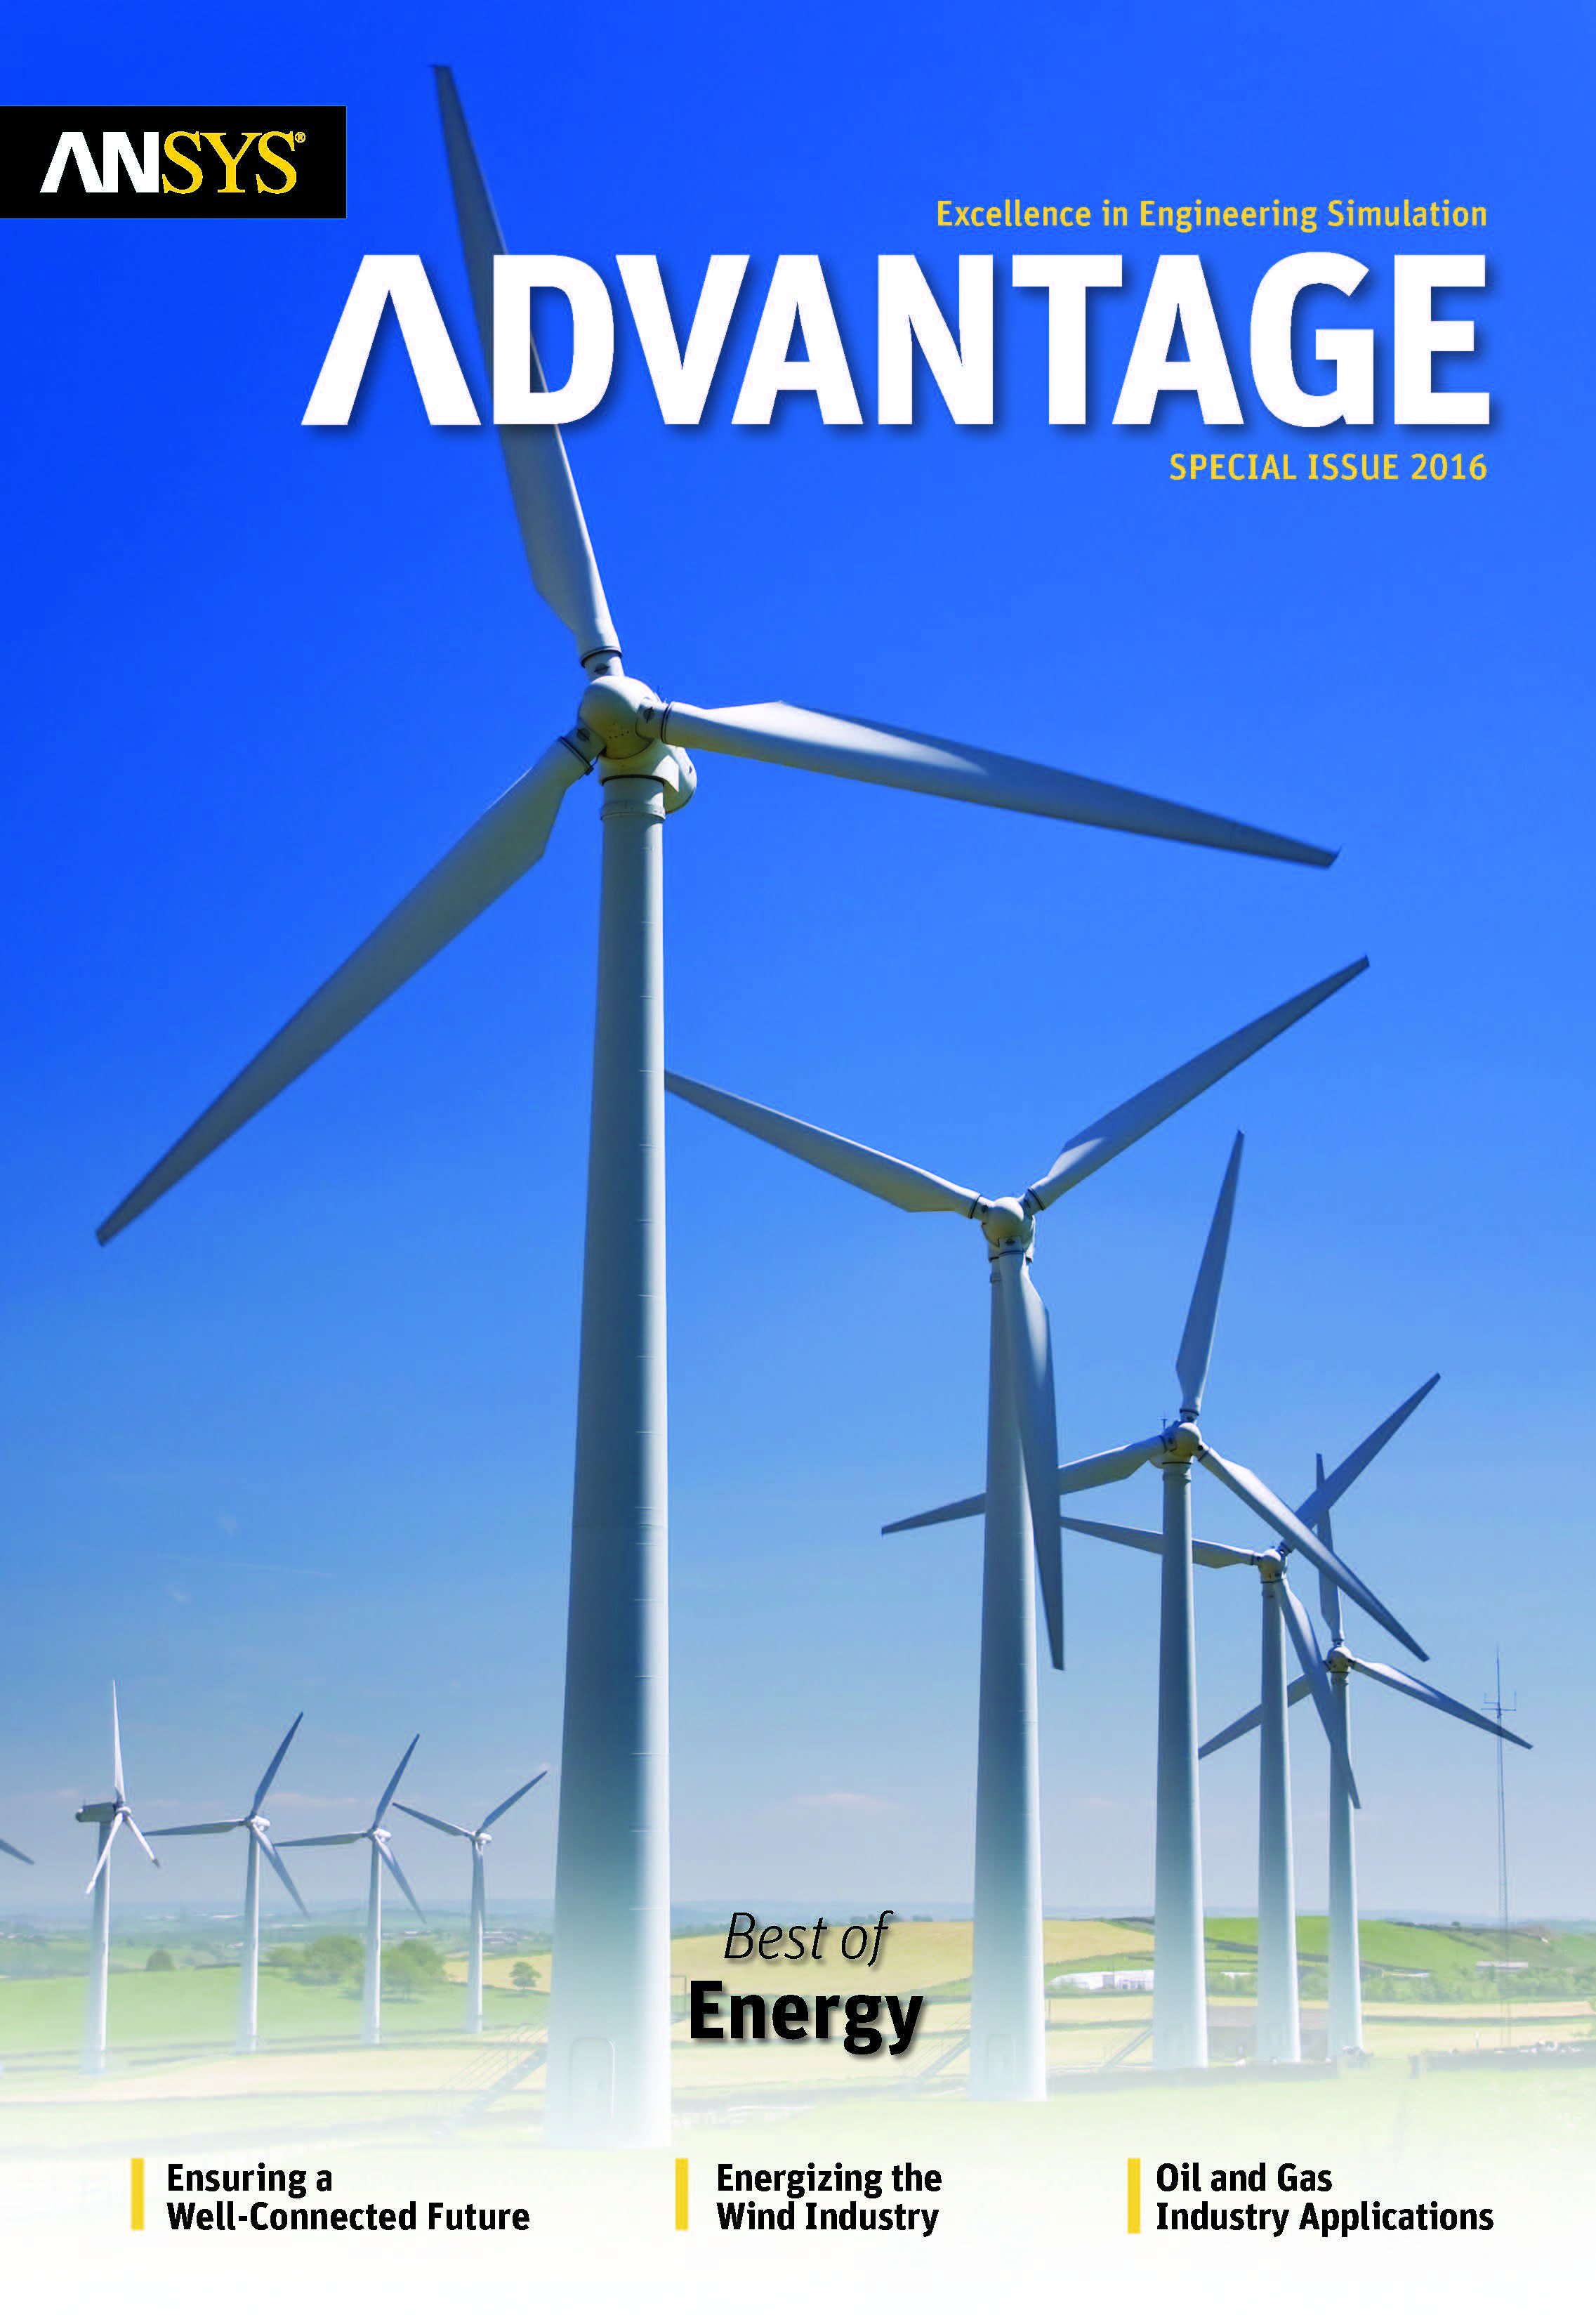 ANSYS Advantage Best of Energy. Special ISSUE 2016